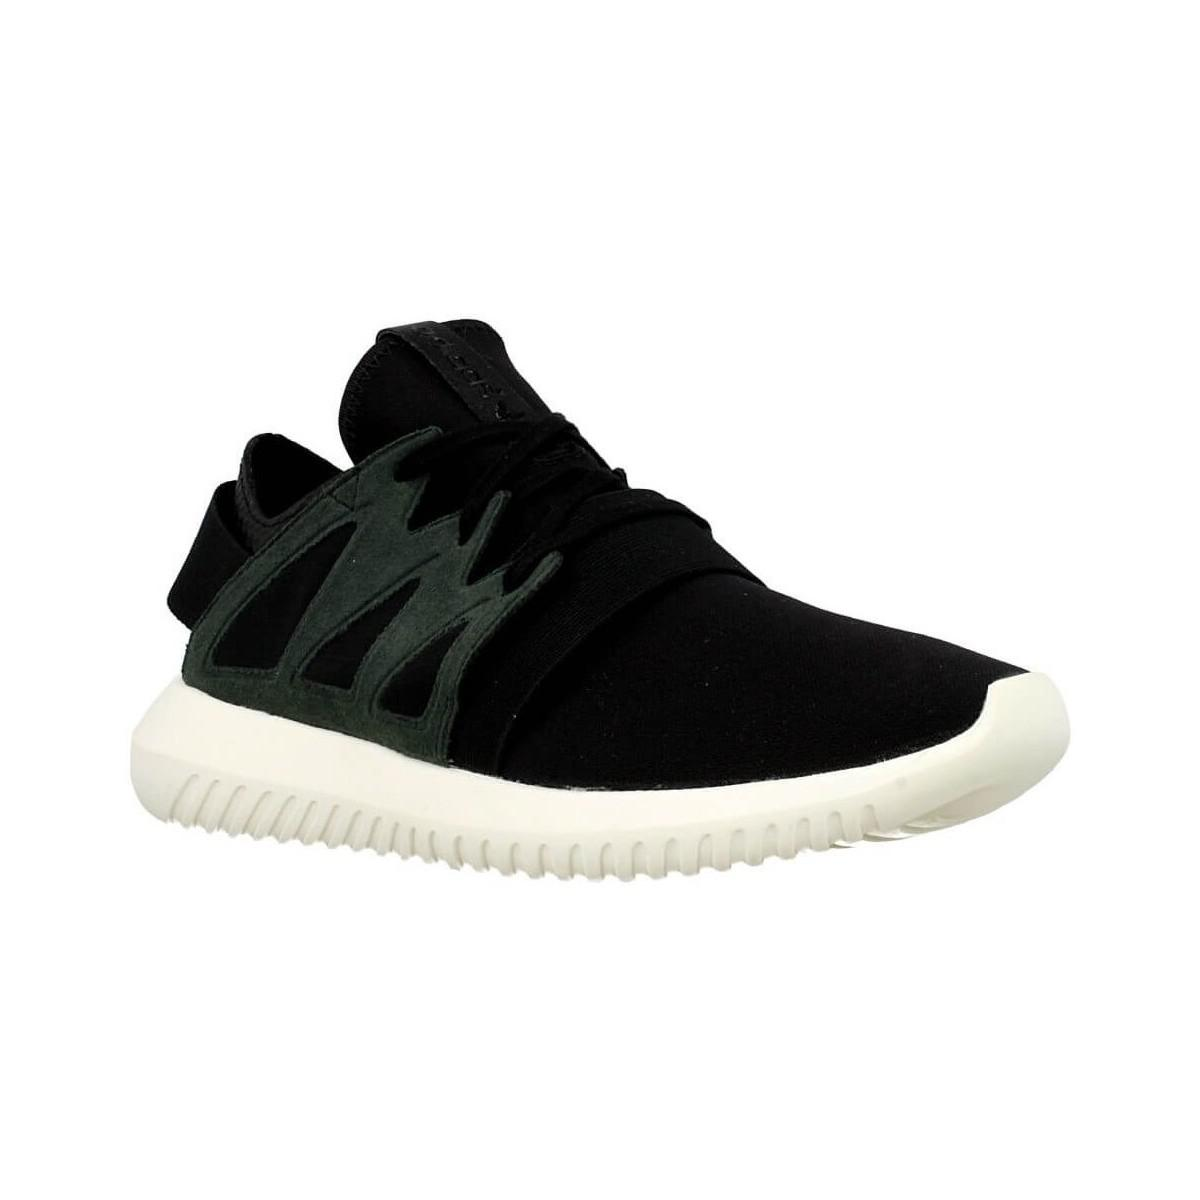 newest 224e0 9f202 adidas. Tubular Viral W Women s Shoes (trainers) In Black